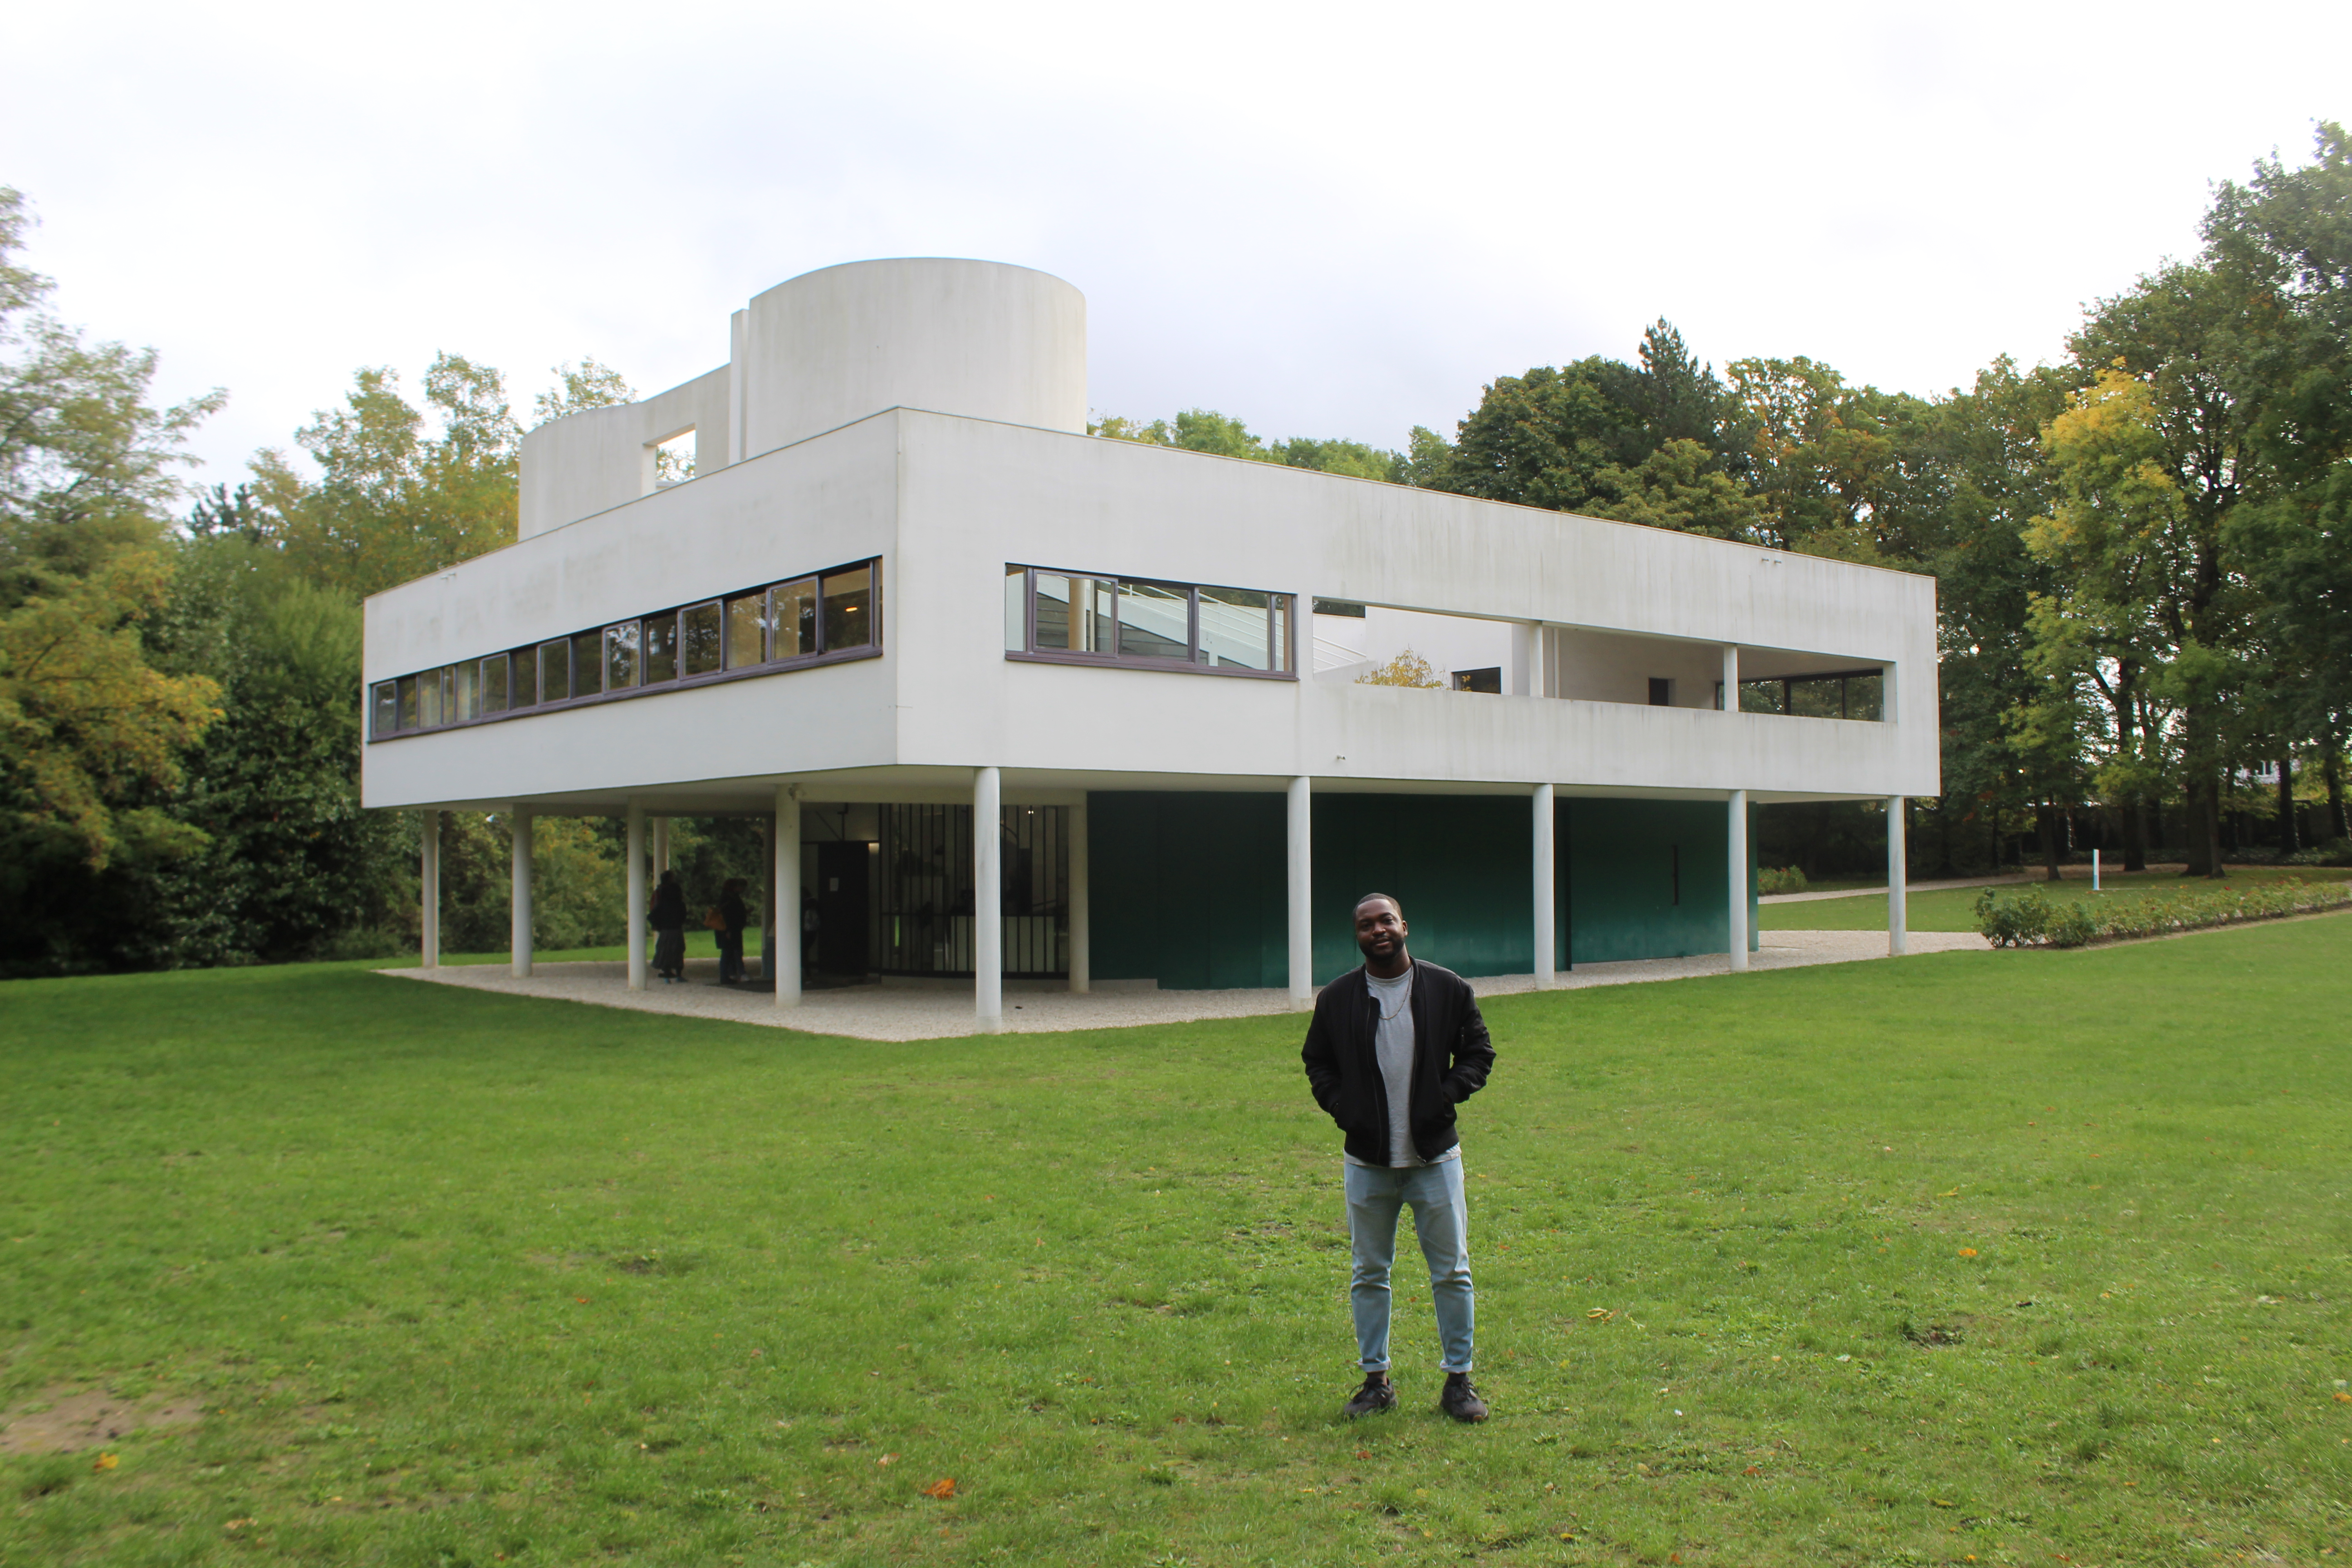 A person standing and posing in front of a building.